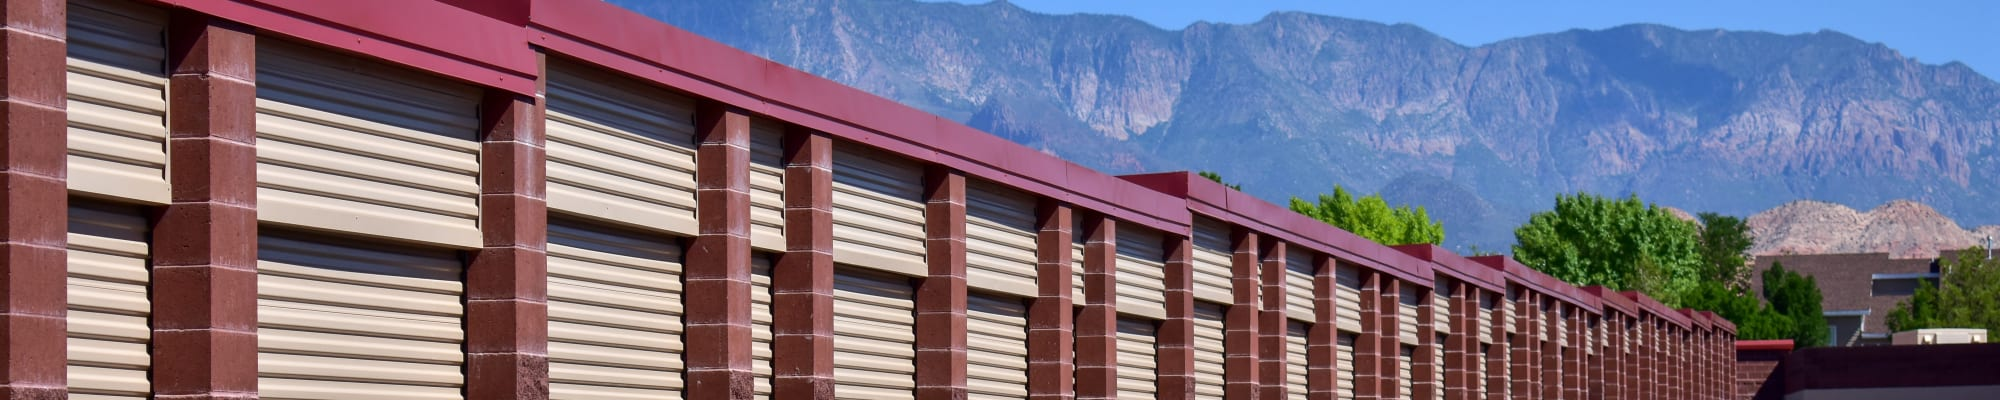 Climate-controlled storage at STOR-N-LOCK Self Storage in Hurricane, Utah